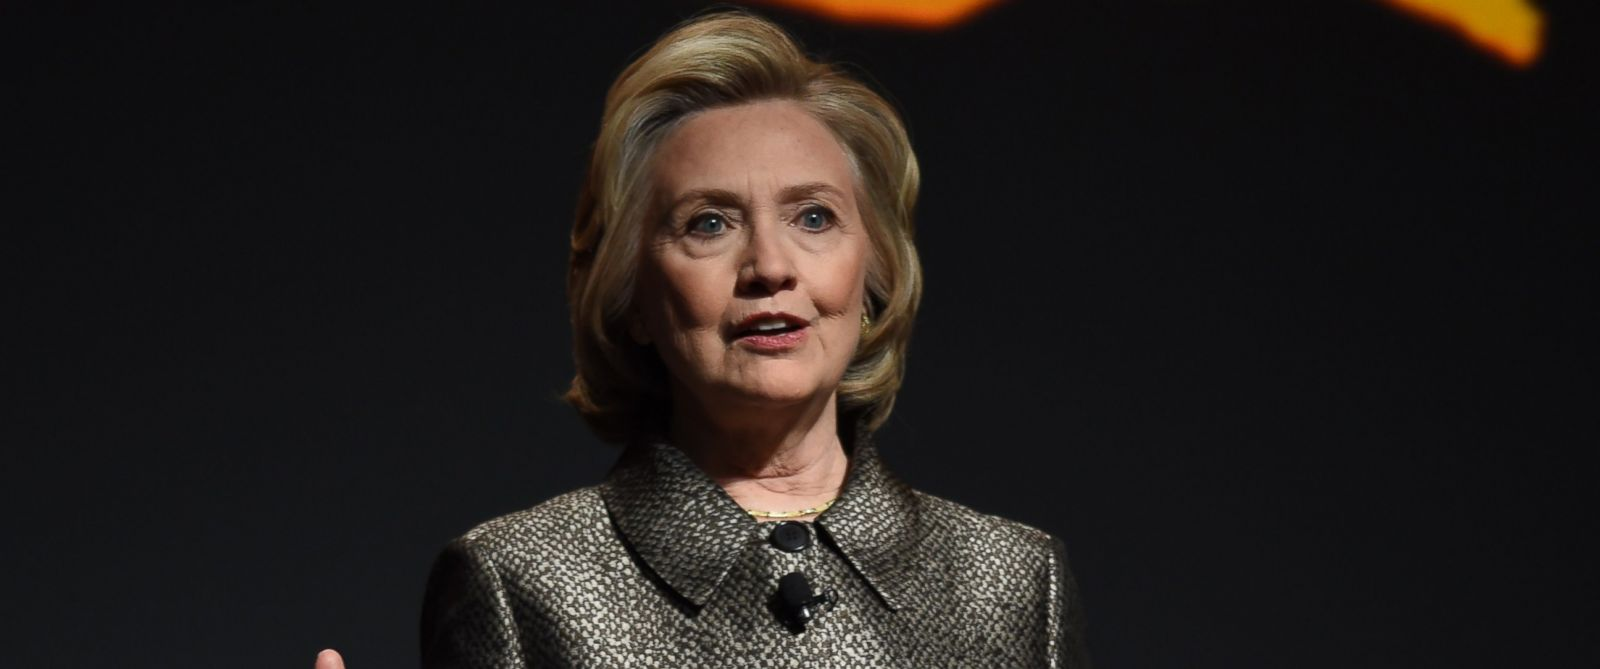 PHOTO: Hillary Clinton participates in a womens equality event March 9, 2015 in New York.